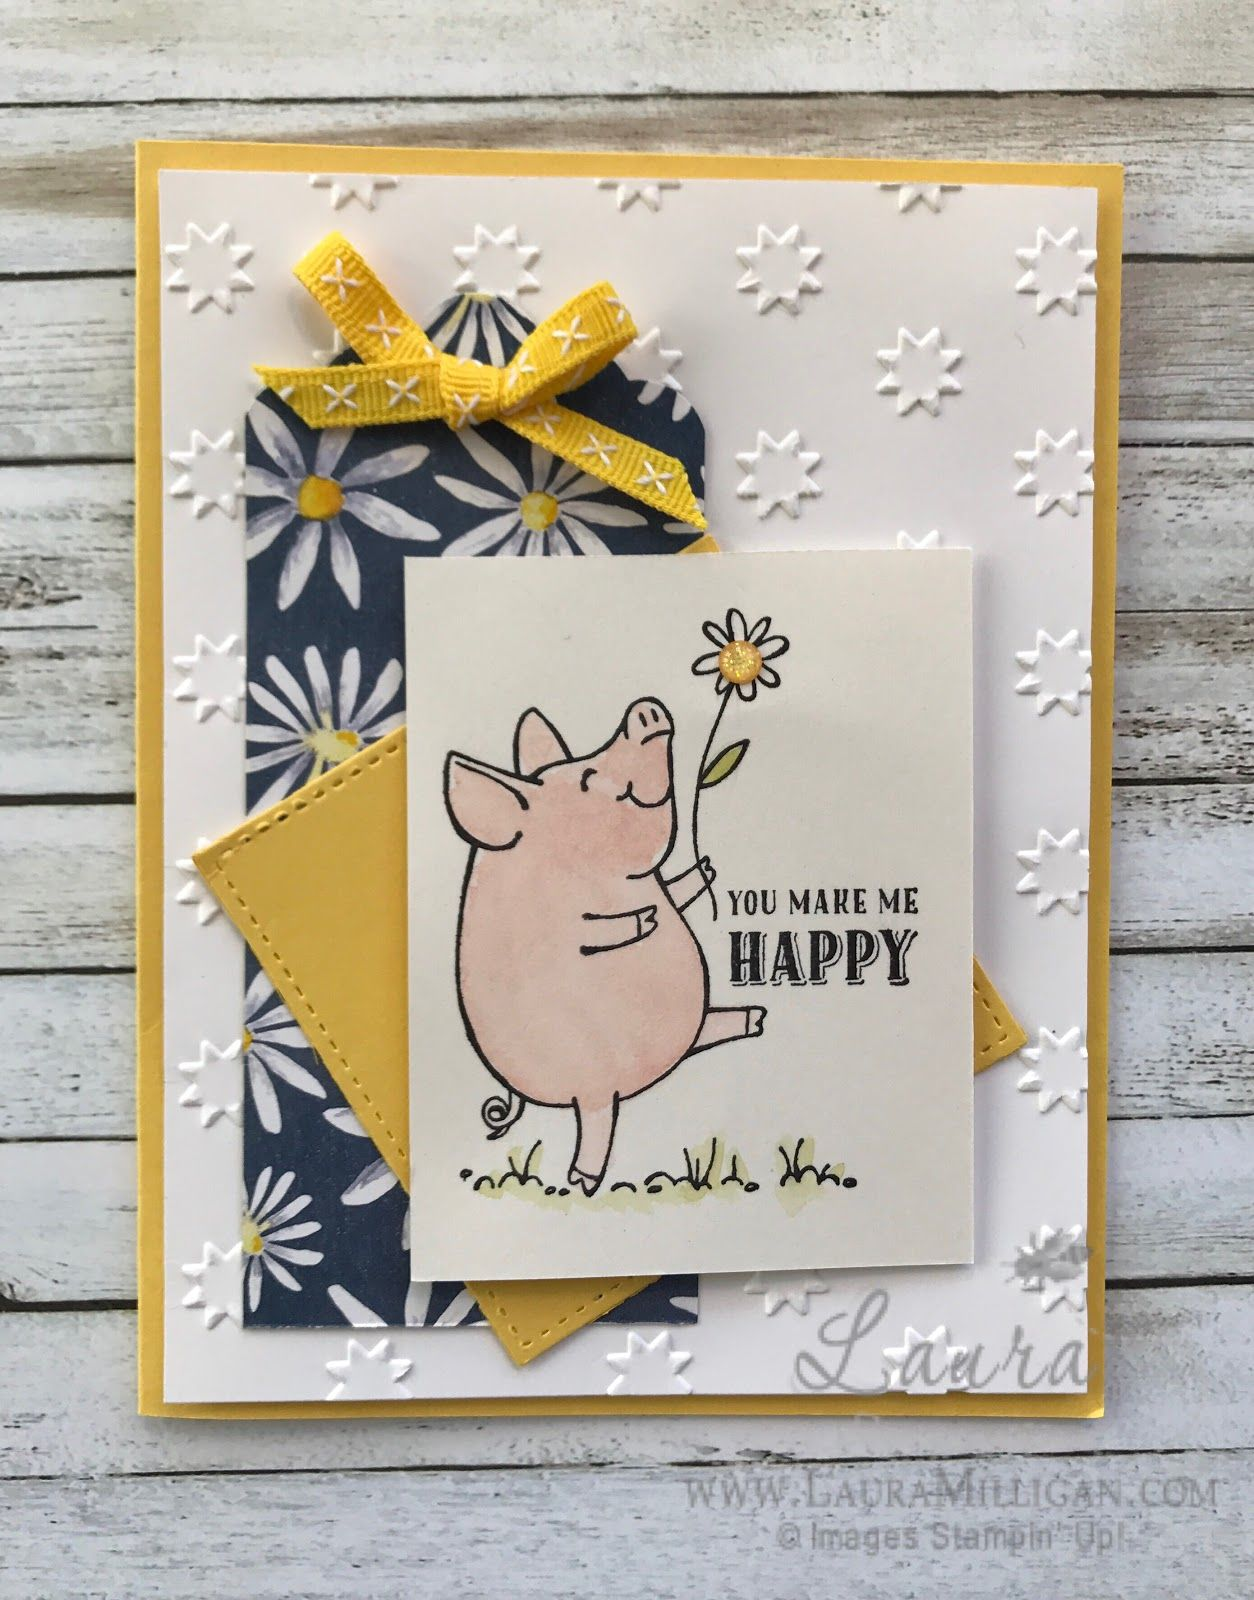 Laura milligan stampin up demonstrator id rather bee papercraft kristyandbryce Images